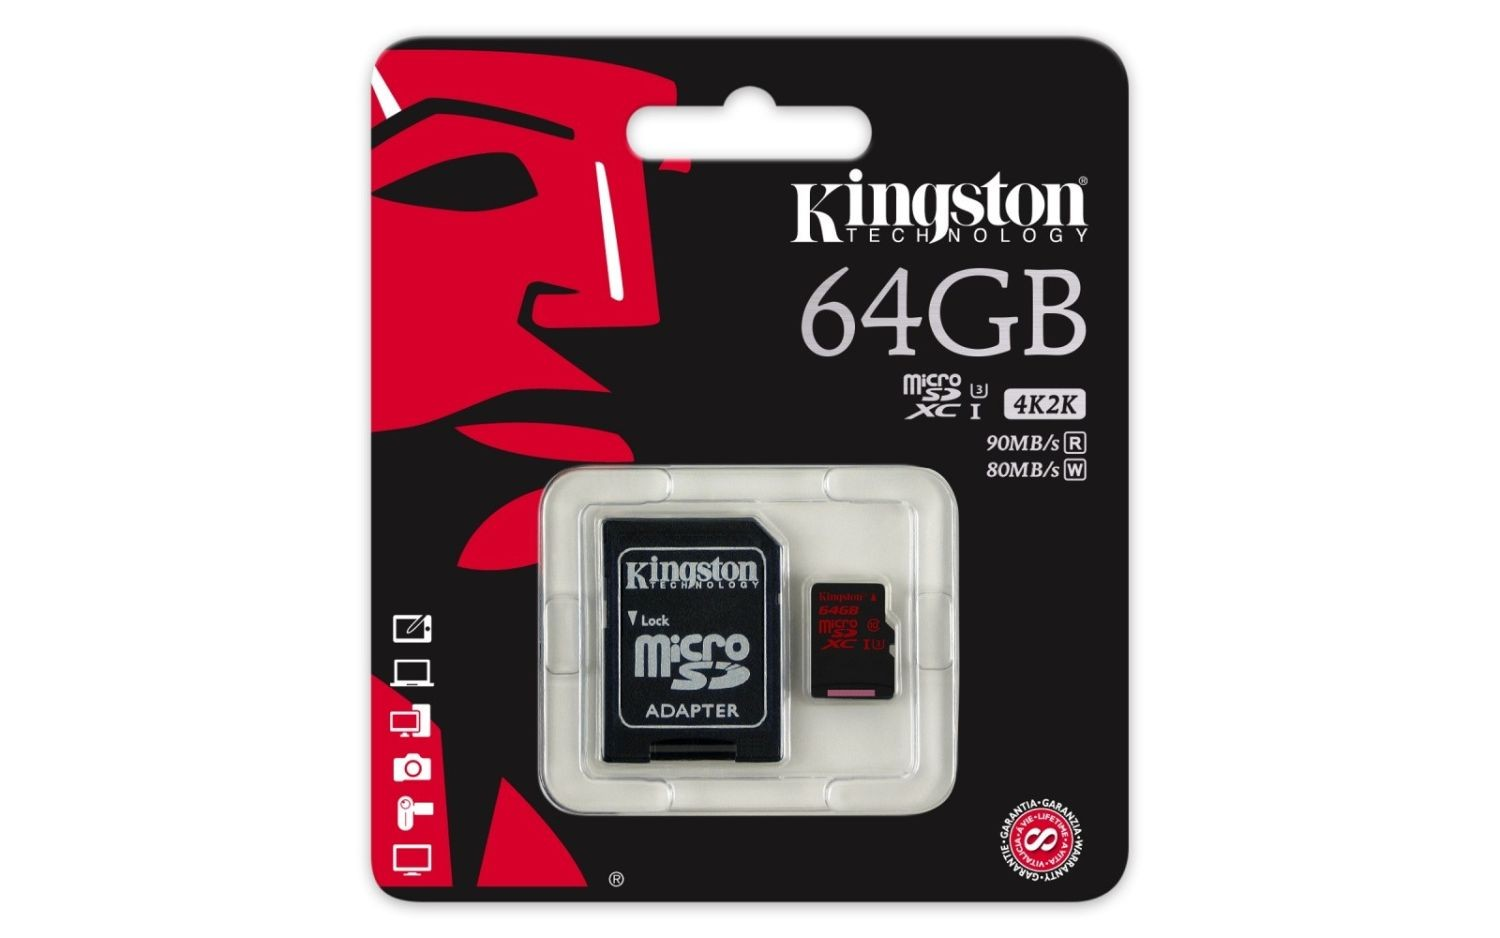 Kingston Moduł pamięci 64GB microSDXC UHS-I speed class 3